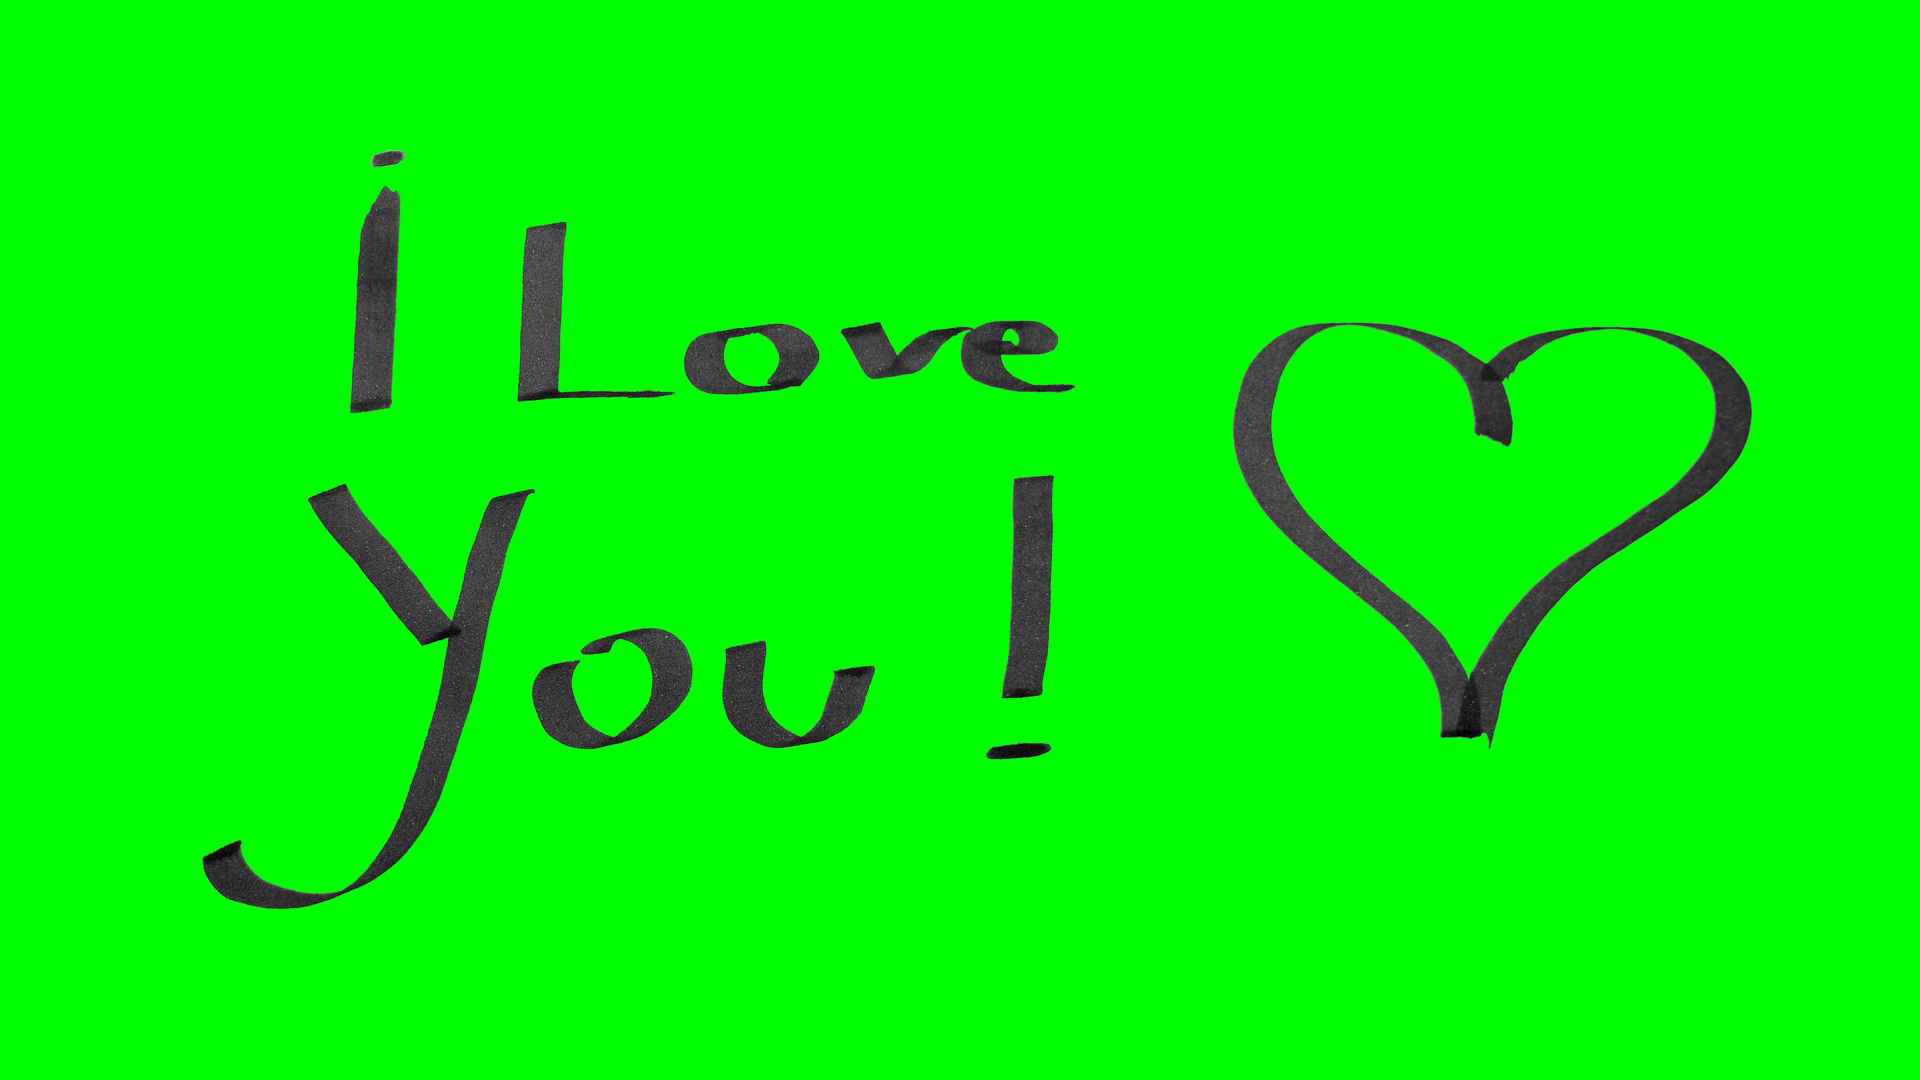 1920x1080 Green Screen Animation Calligraphy Writing I Love You And Drawing